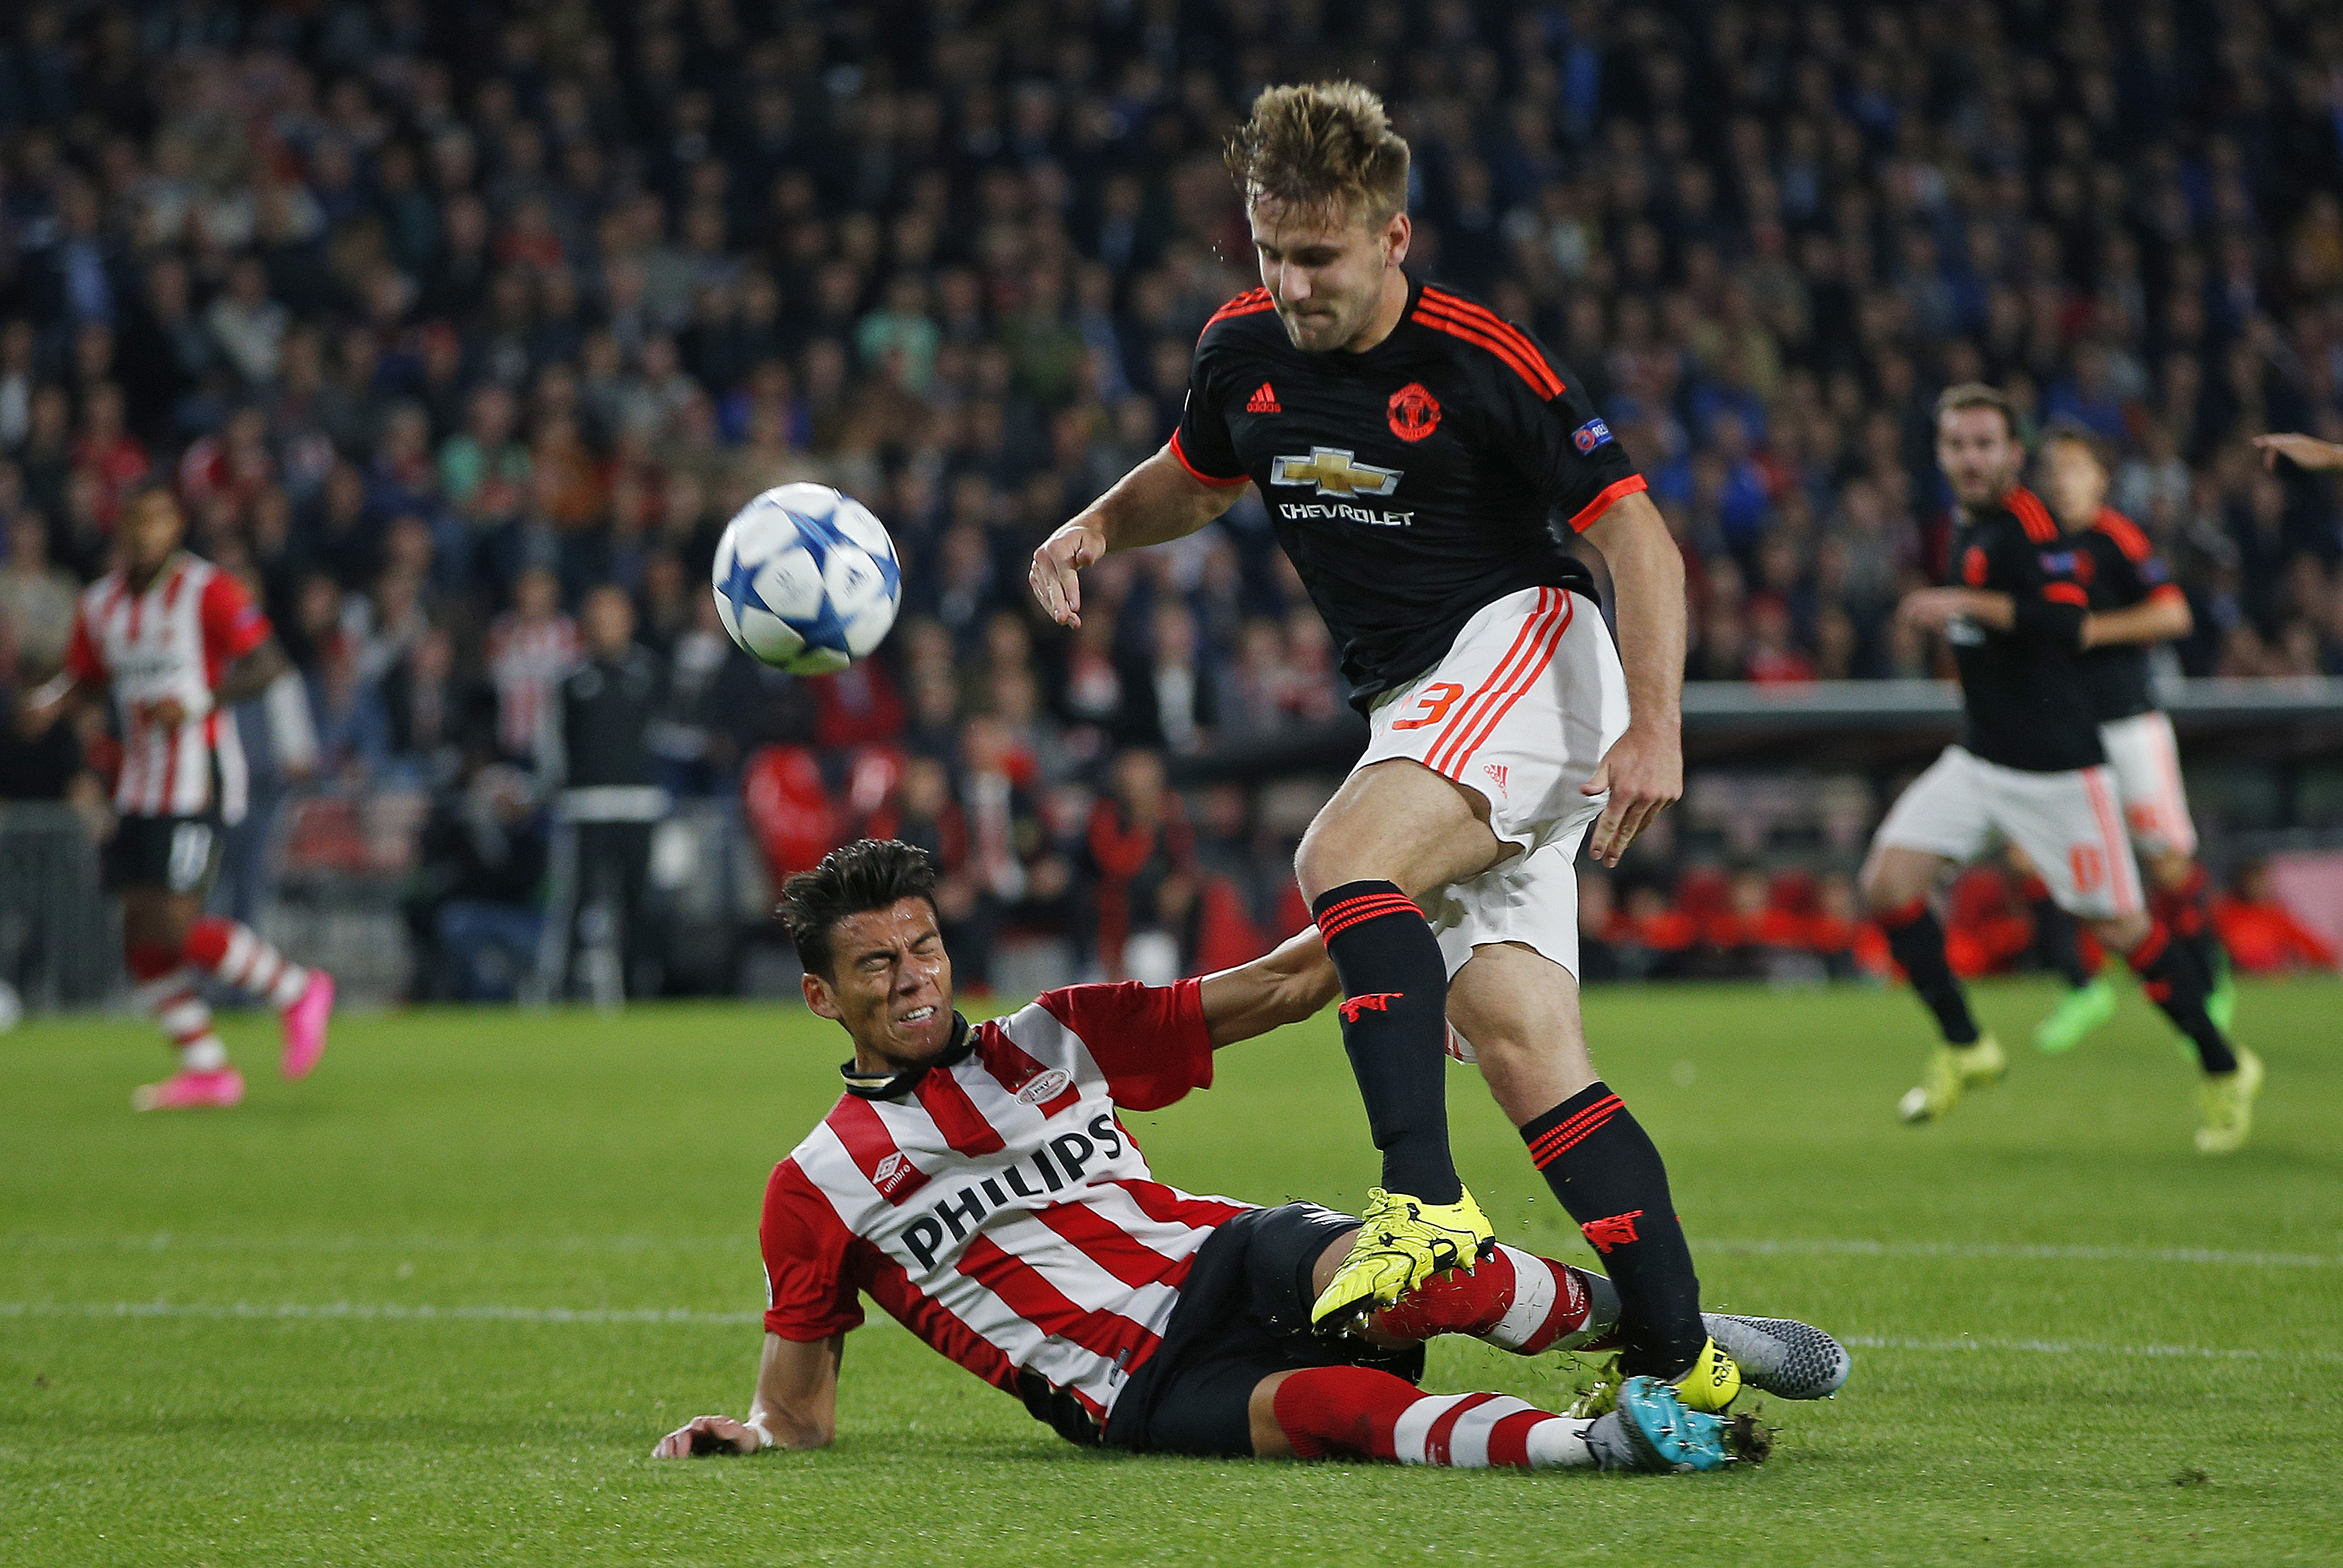 Football - PSV Eindhoven v Manchester United - UEFA Champions League Group Stage - Group B - Philips Stadion, Eindhoven, Netherlands - 15/9/15nManchester United's Luke Shaw goes down injured after this challenge from PSV's Hector MorenonAction Images via Reuters / Andrew CouldridgenLivepicnEDITORIAL USE ONLY.